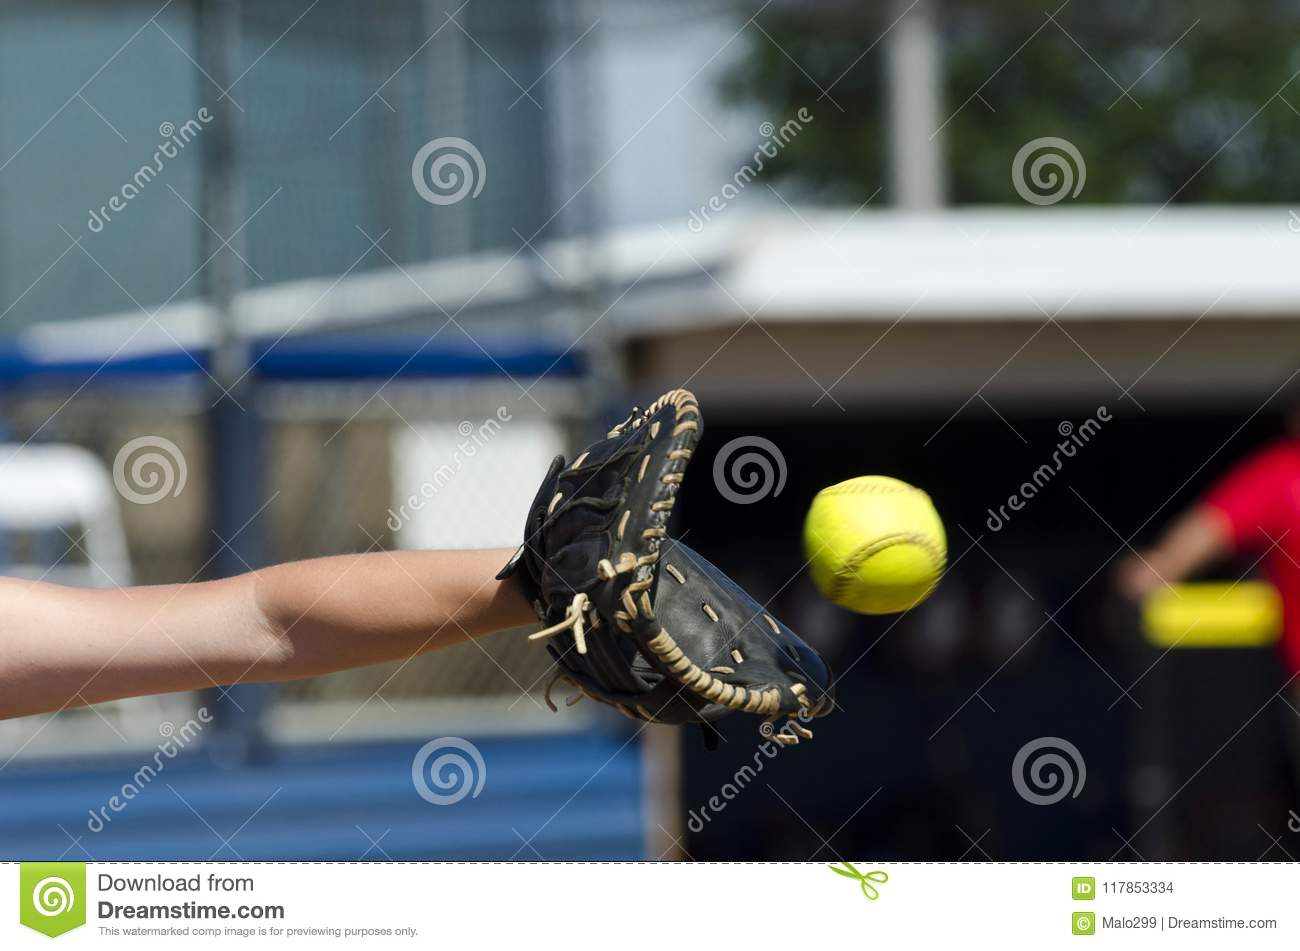 Softball Player Reaches Out To Catch Ball